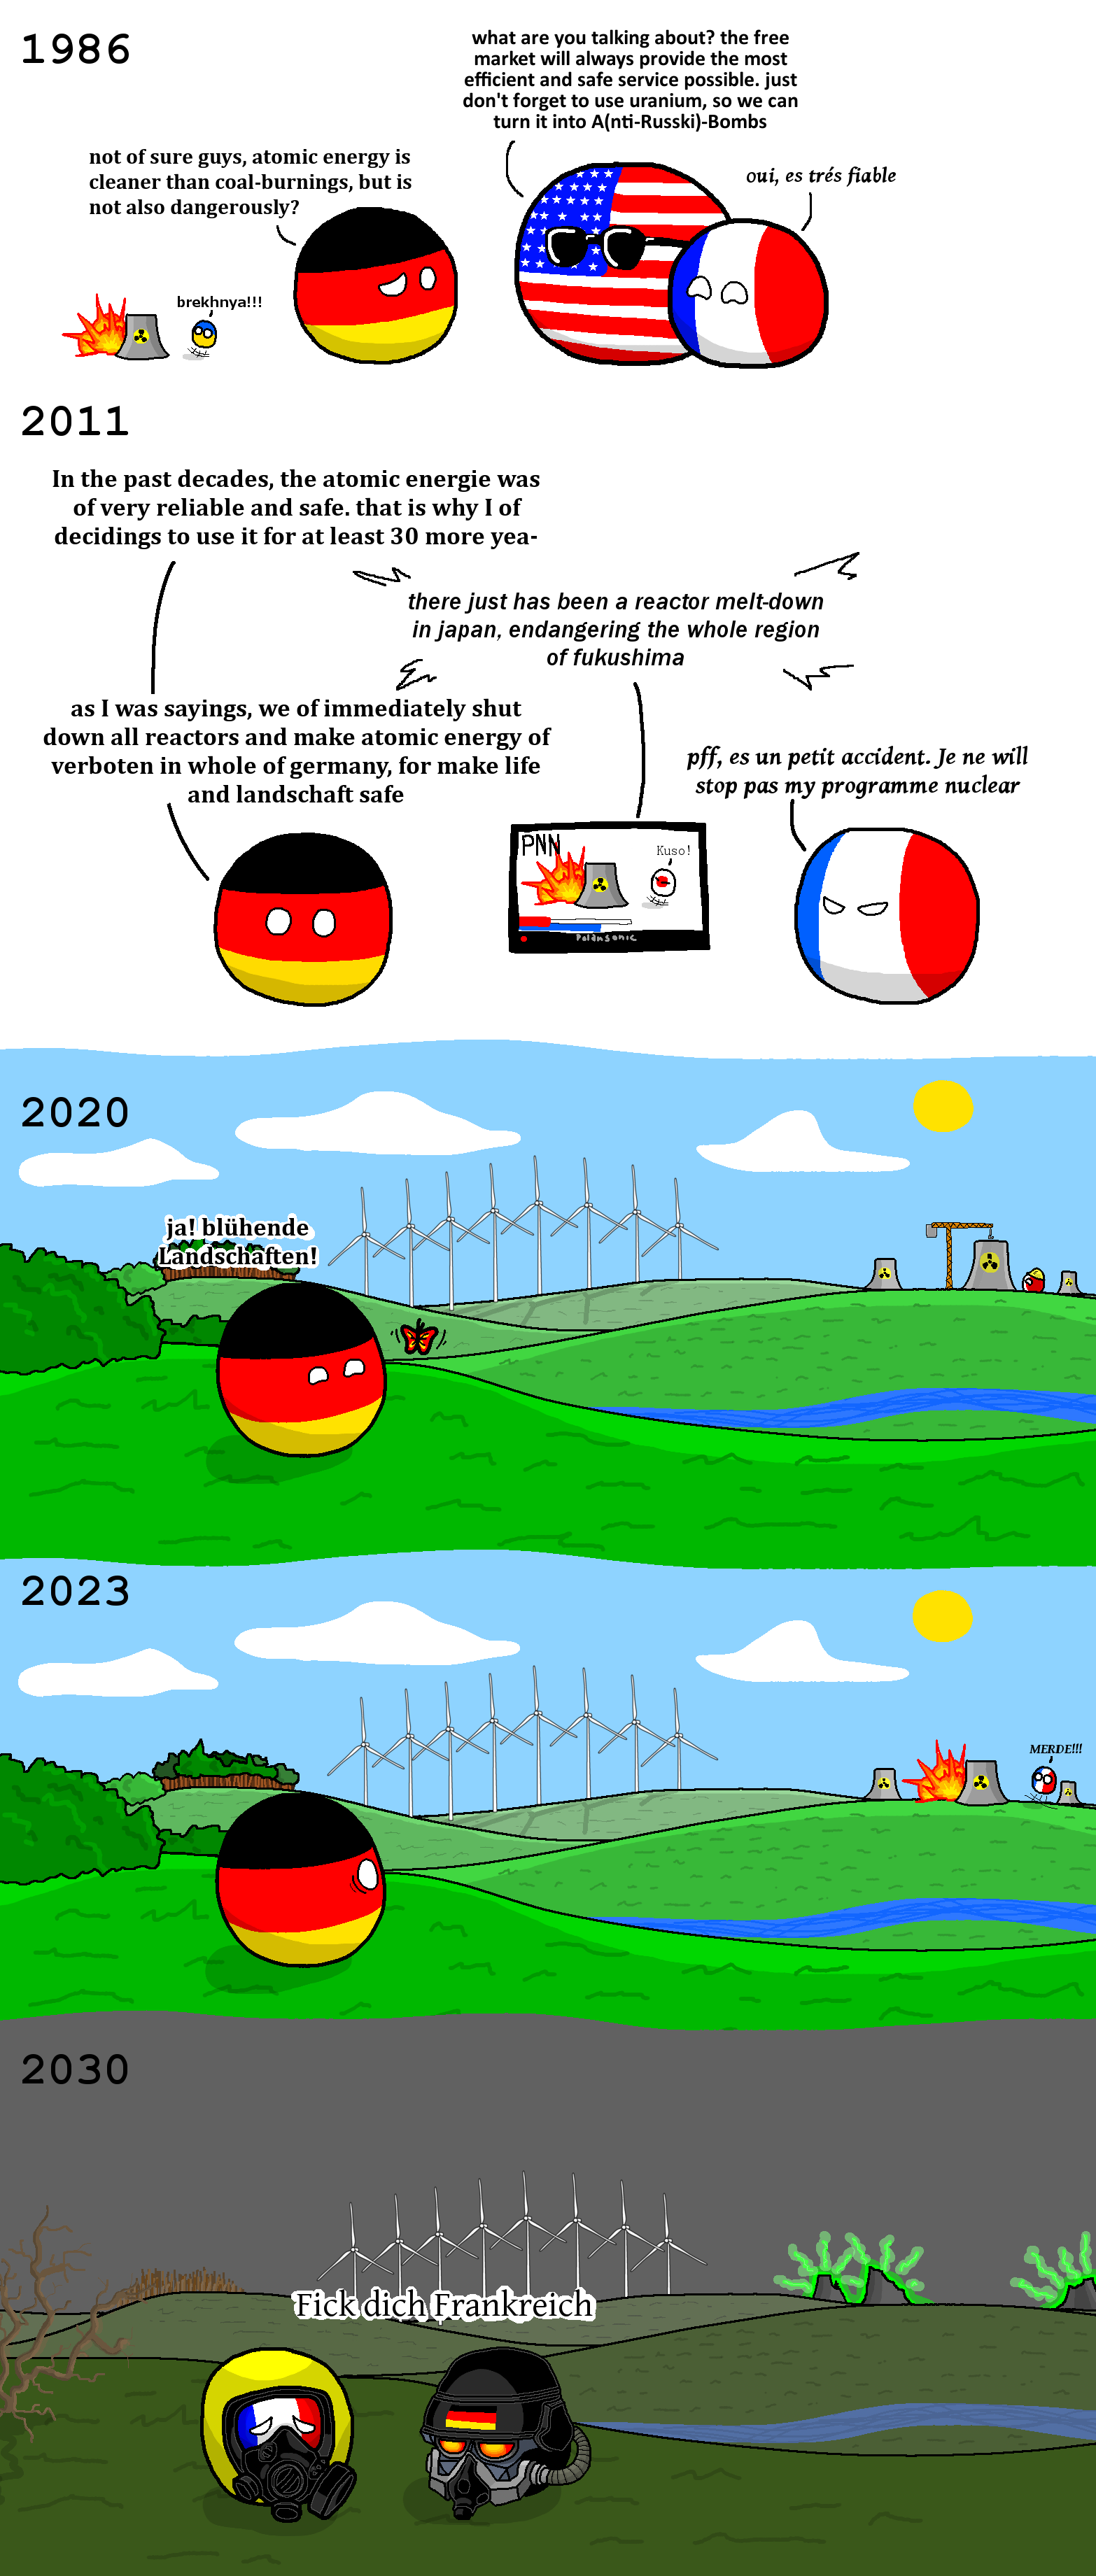 Germany and the nuclear phase-out